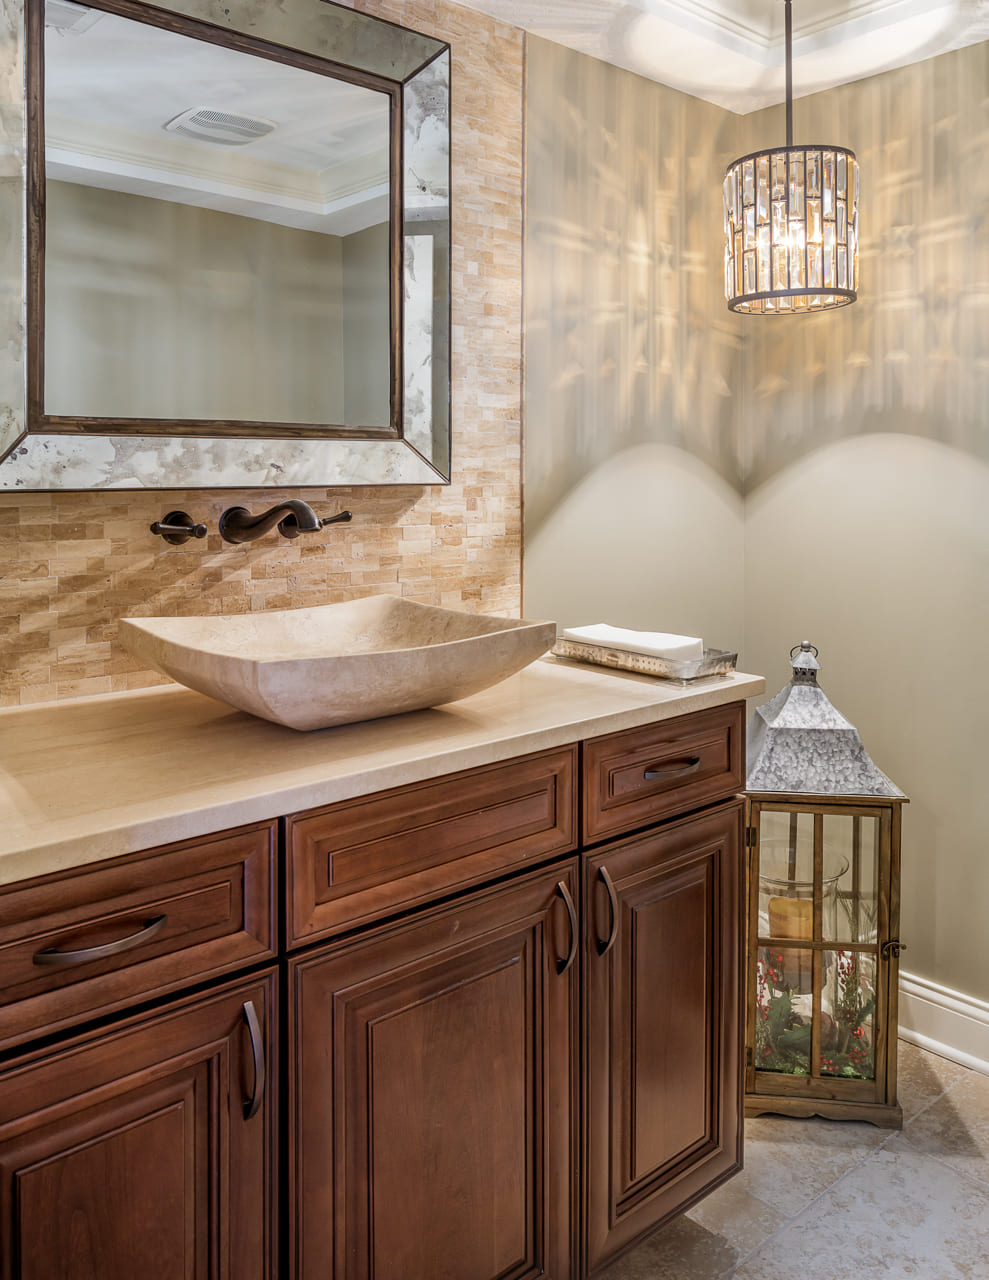 Beautiful Bathroom with Stone and Natural Accents in Walk Out Basement | Compelling Homes Des Moines, IA